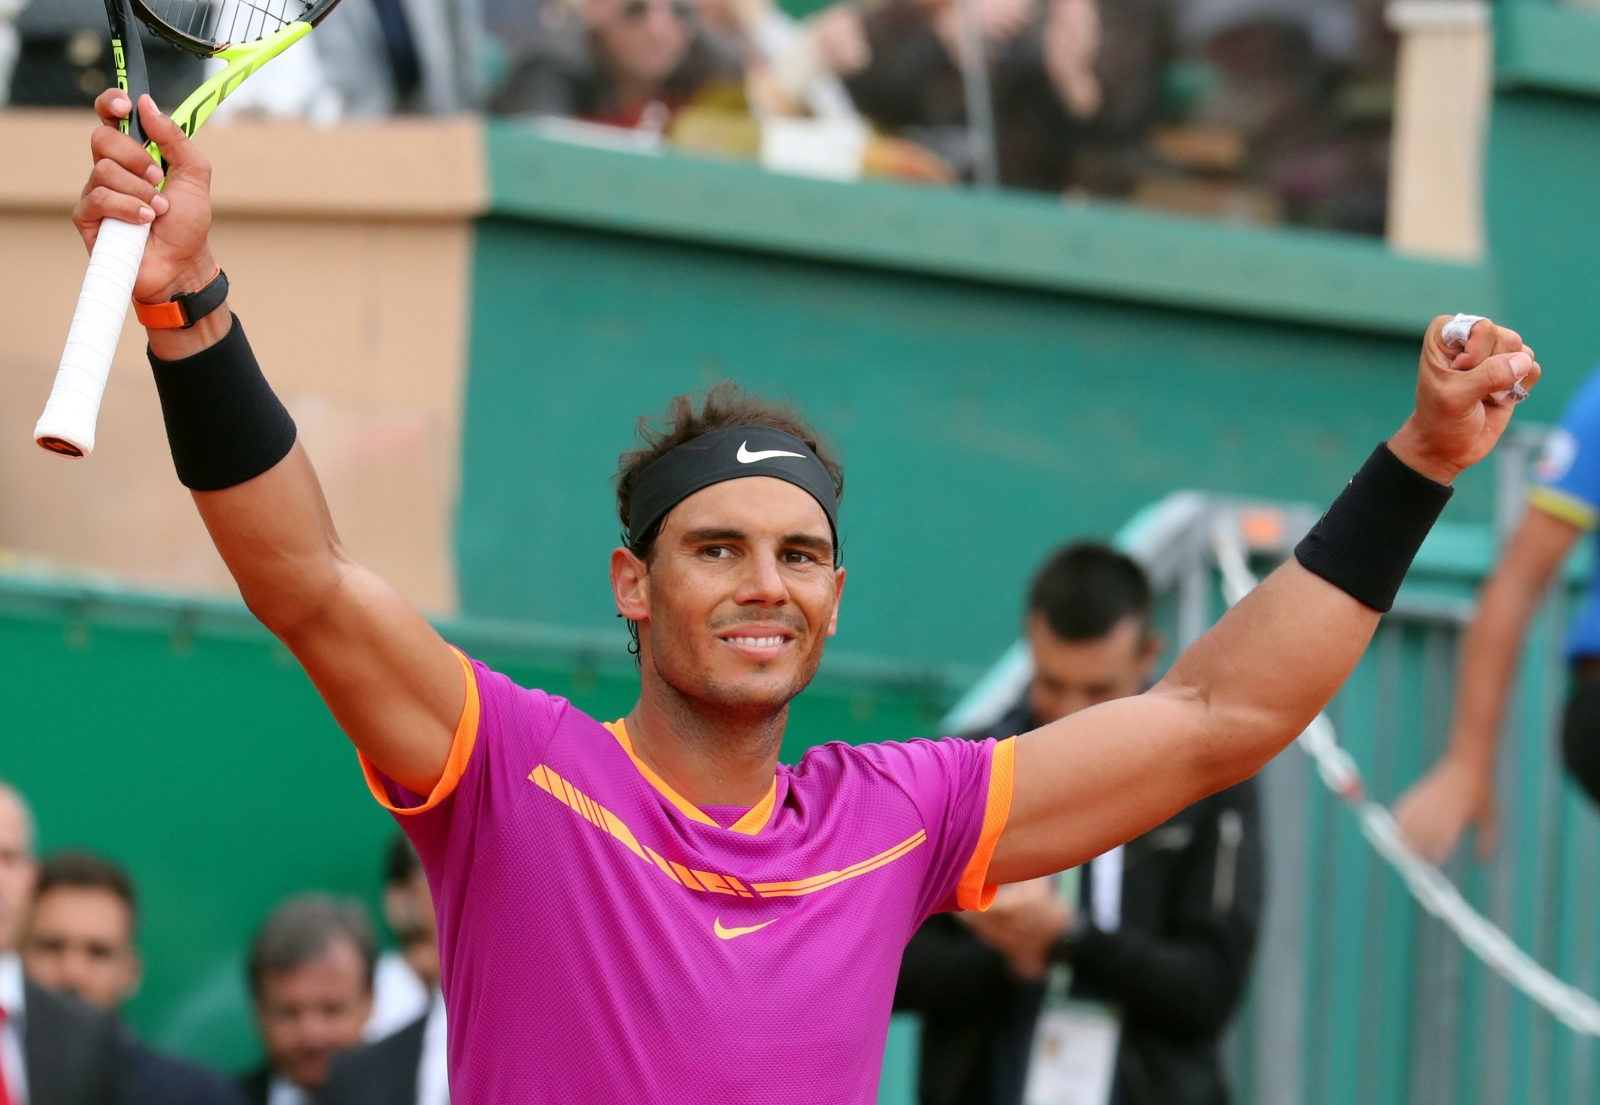 Rafael Nadal 'emotionally stable' as he targets second title of 2017 at Barcelona Open